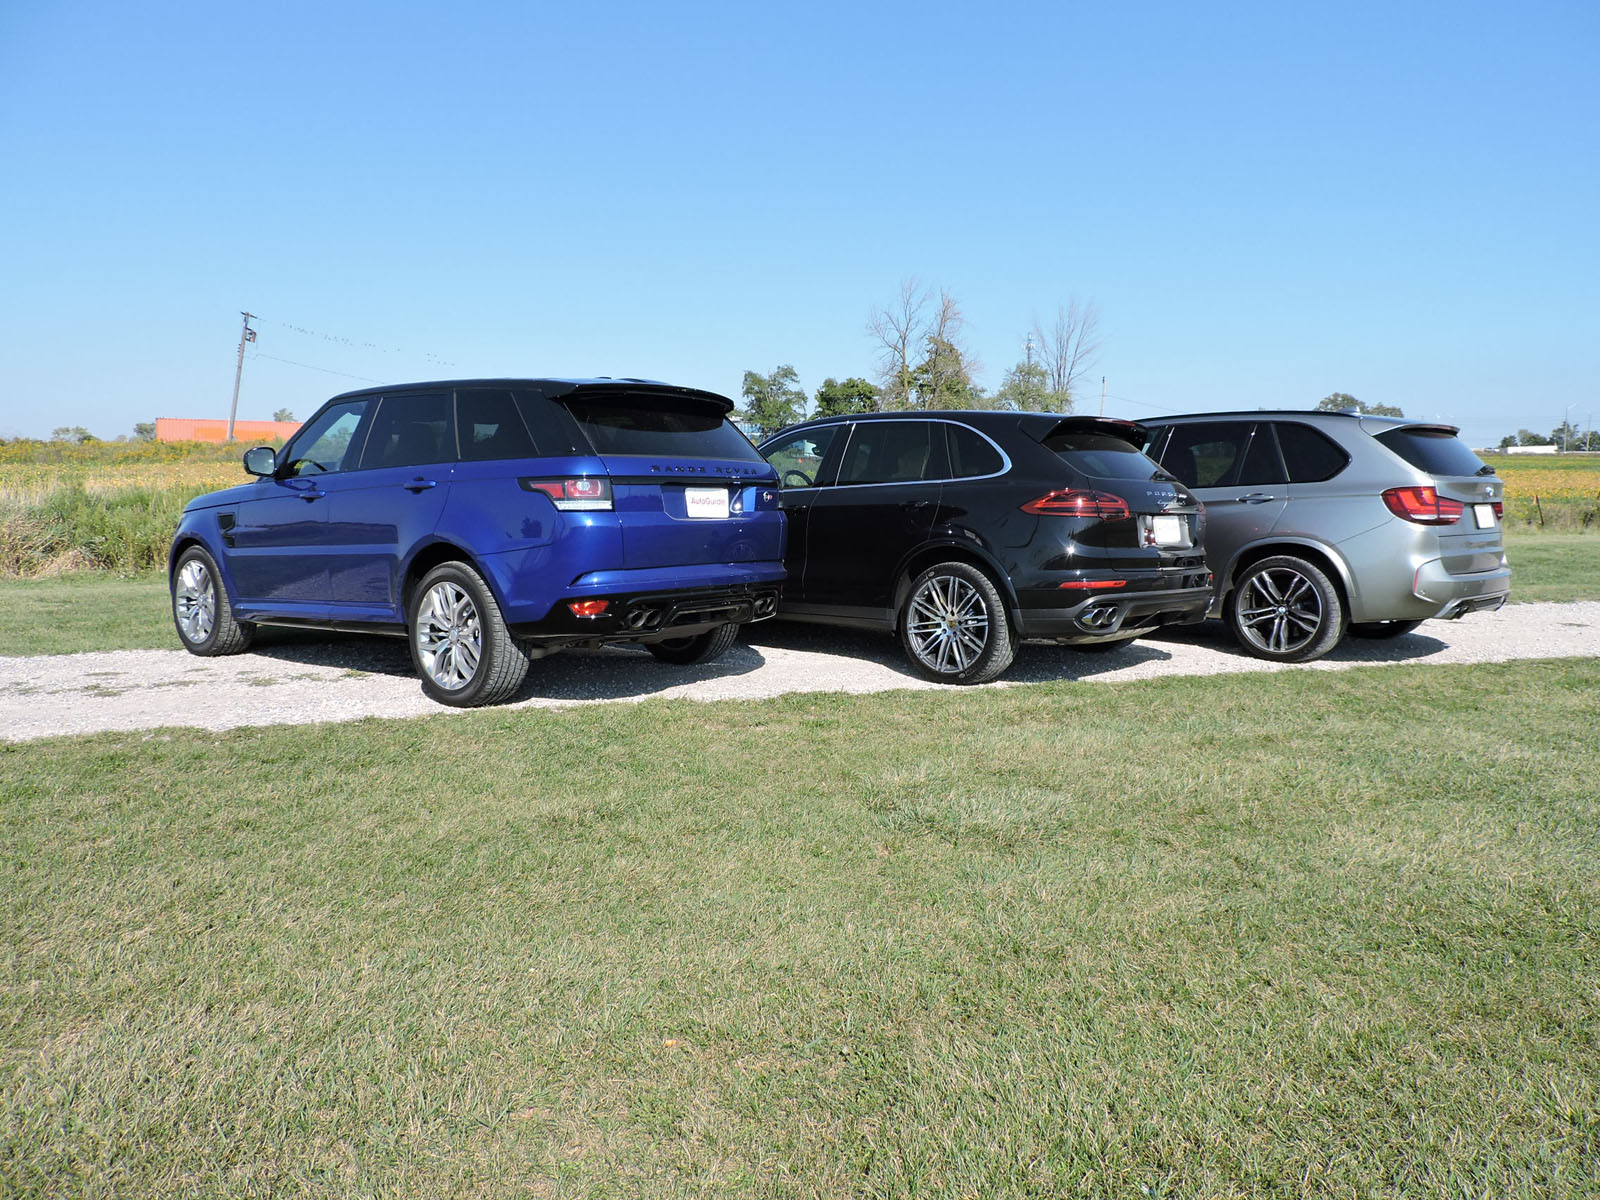 bmw x5 m vs porsche cayenne turbo s vs range rover sport. Black Bedroom Furniture Sets. Home Design Ideas